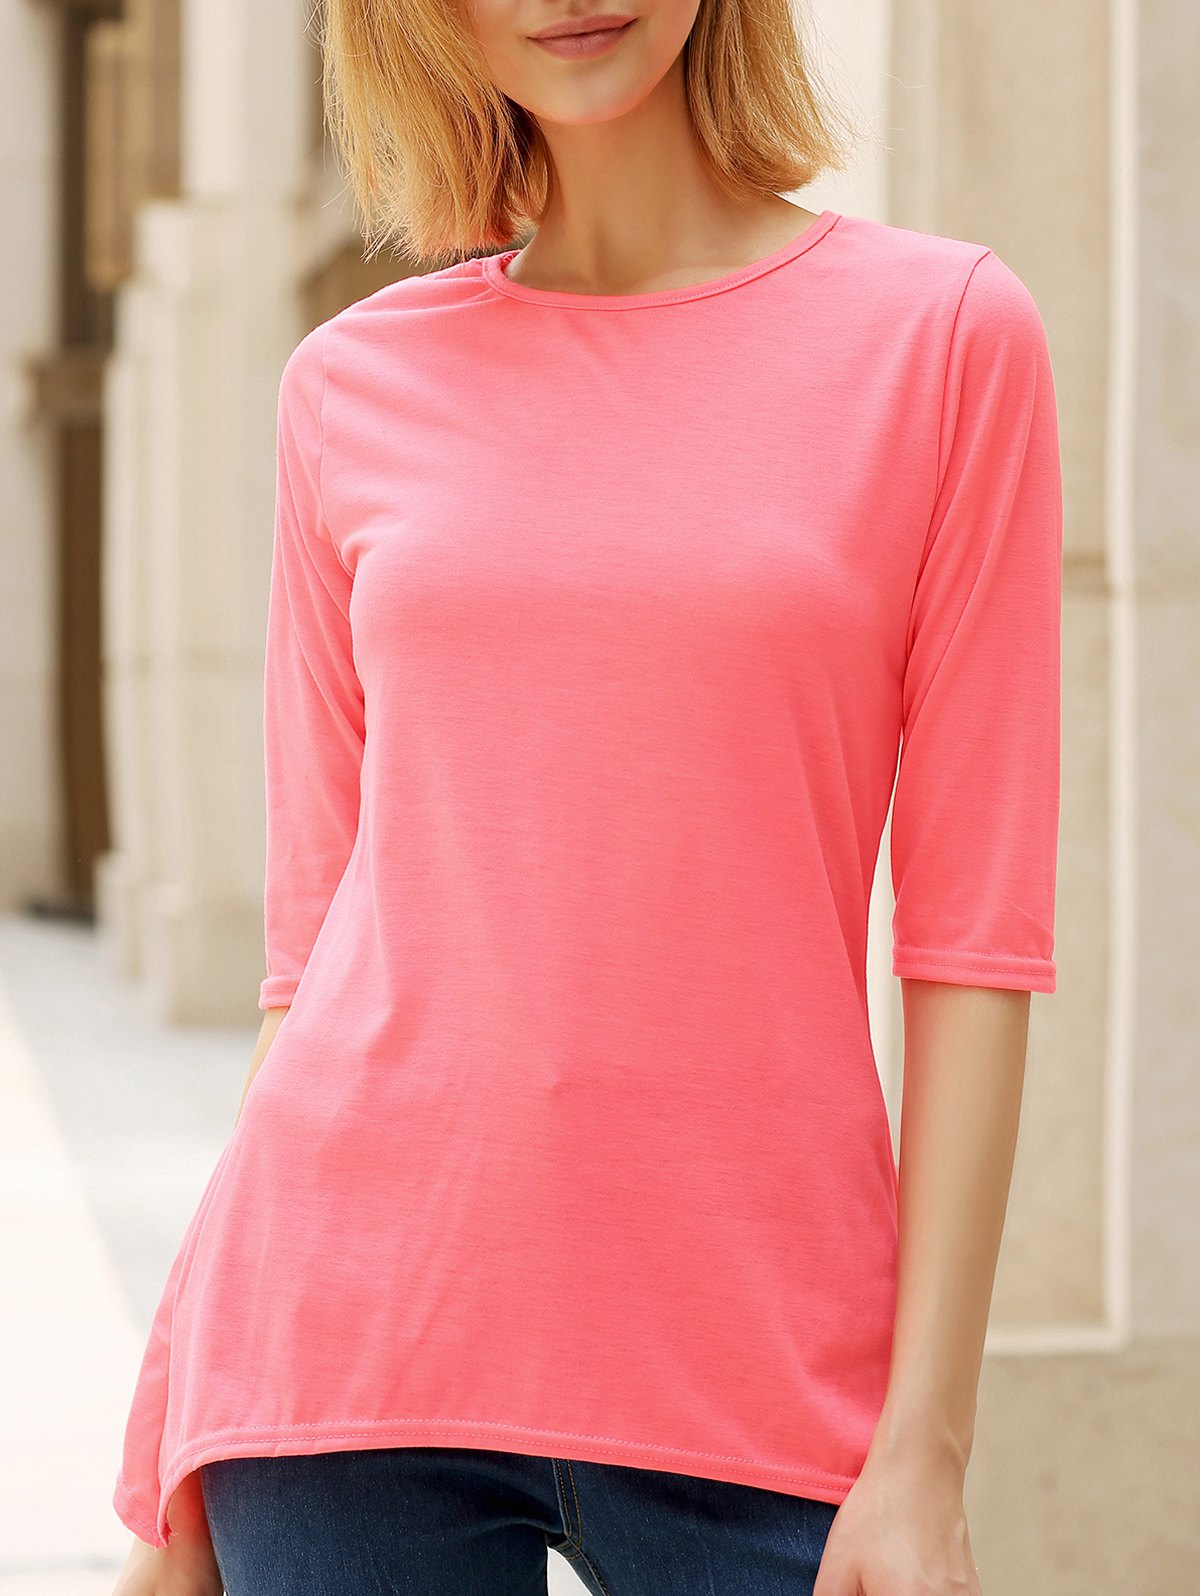 Stylish Women's Round Neck 3/4 Sleeve High Low T-Shirt - LIGHT PINK XL